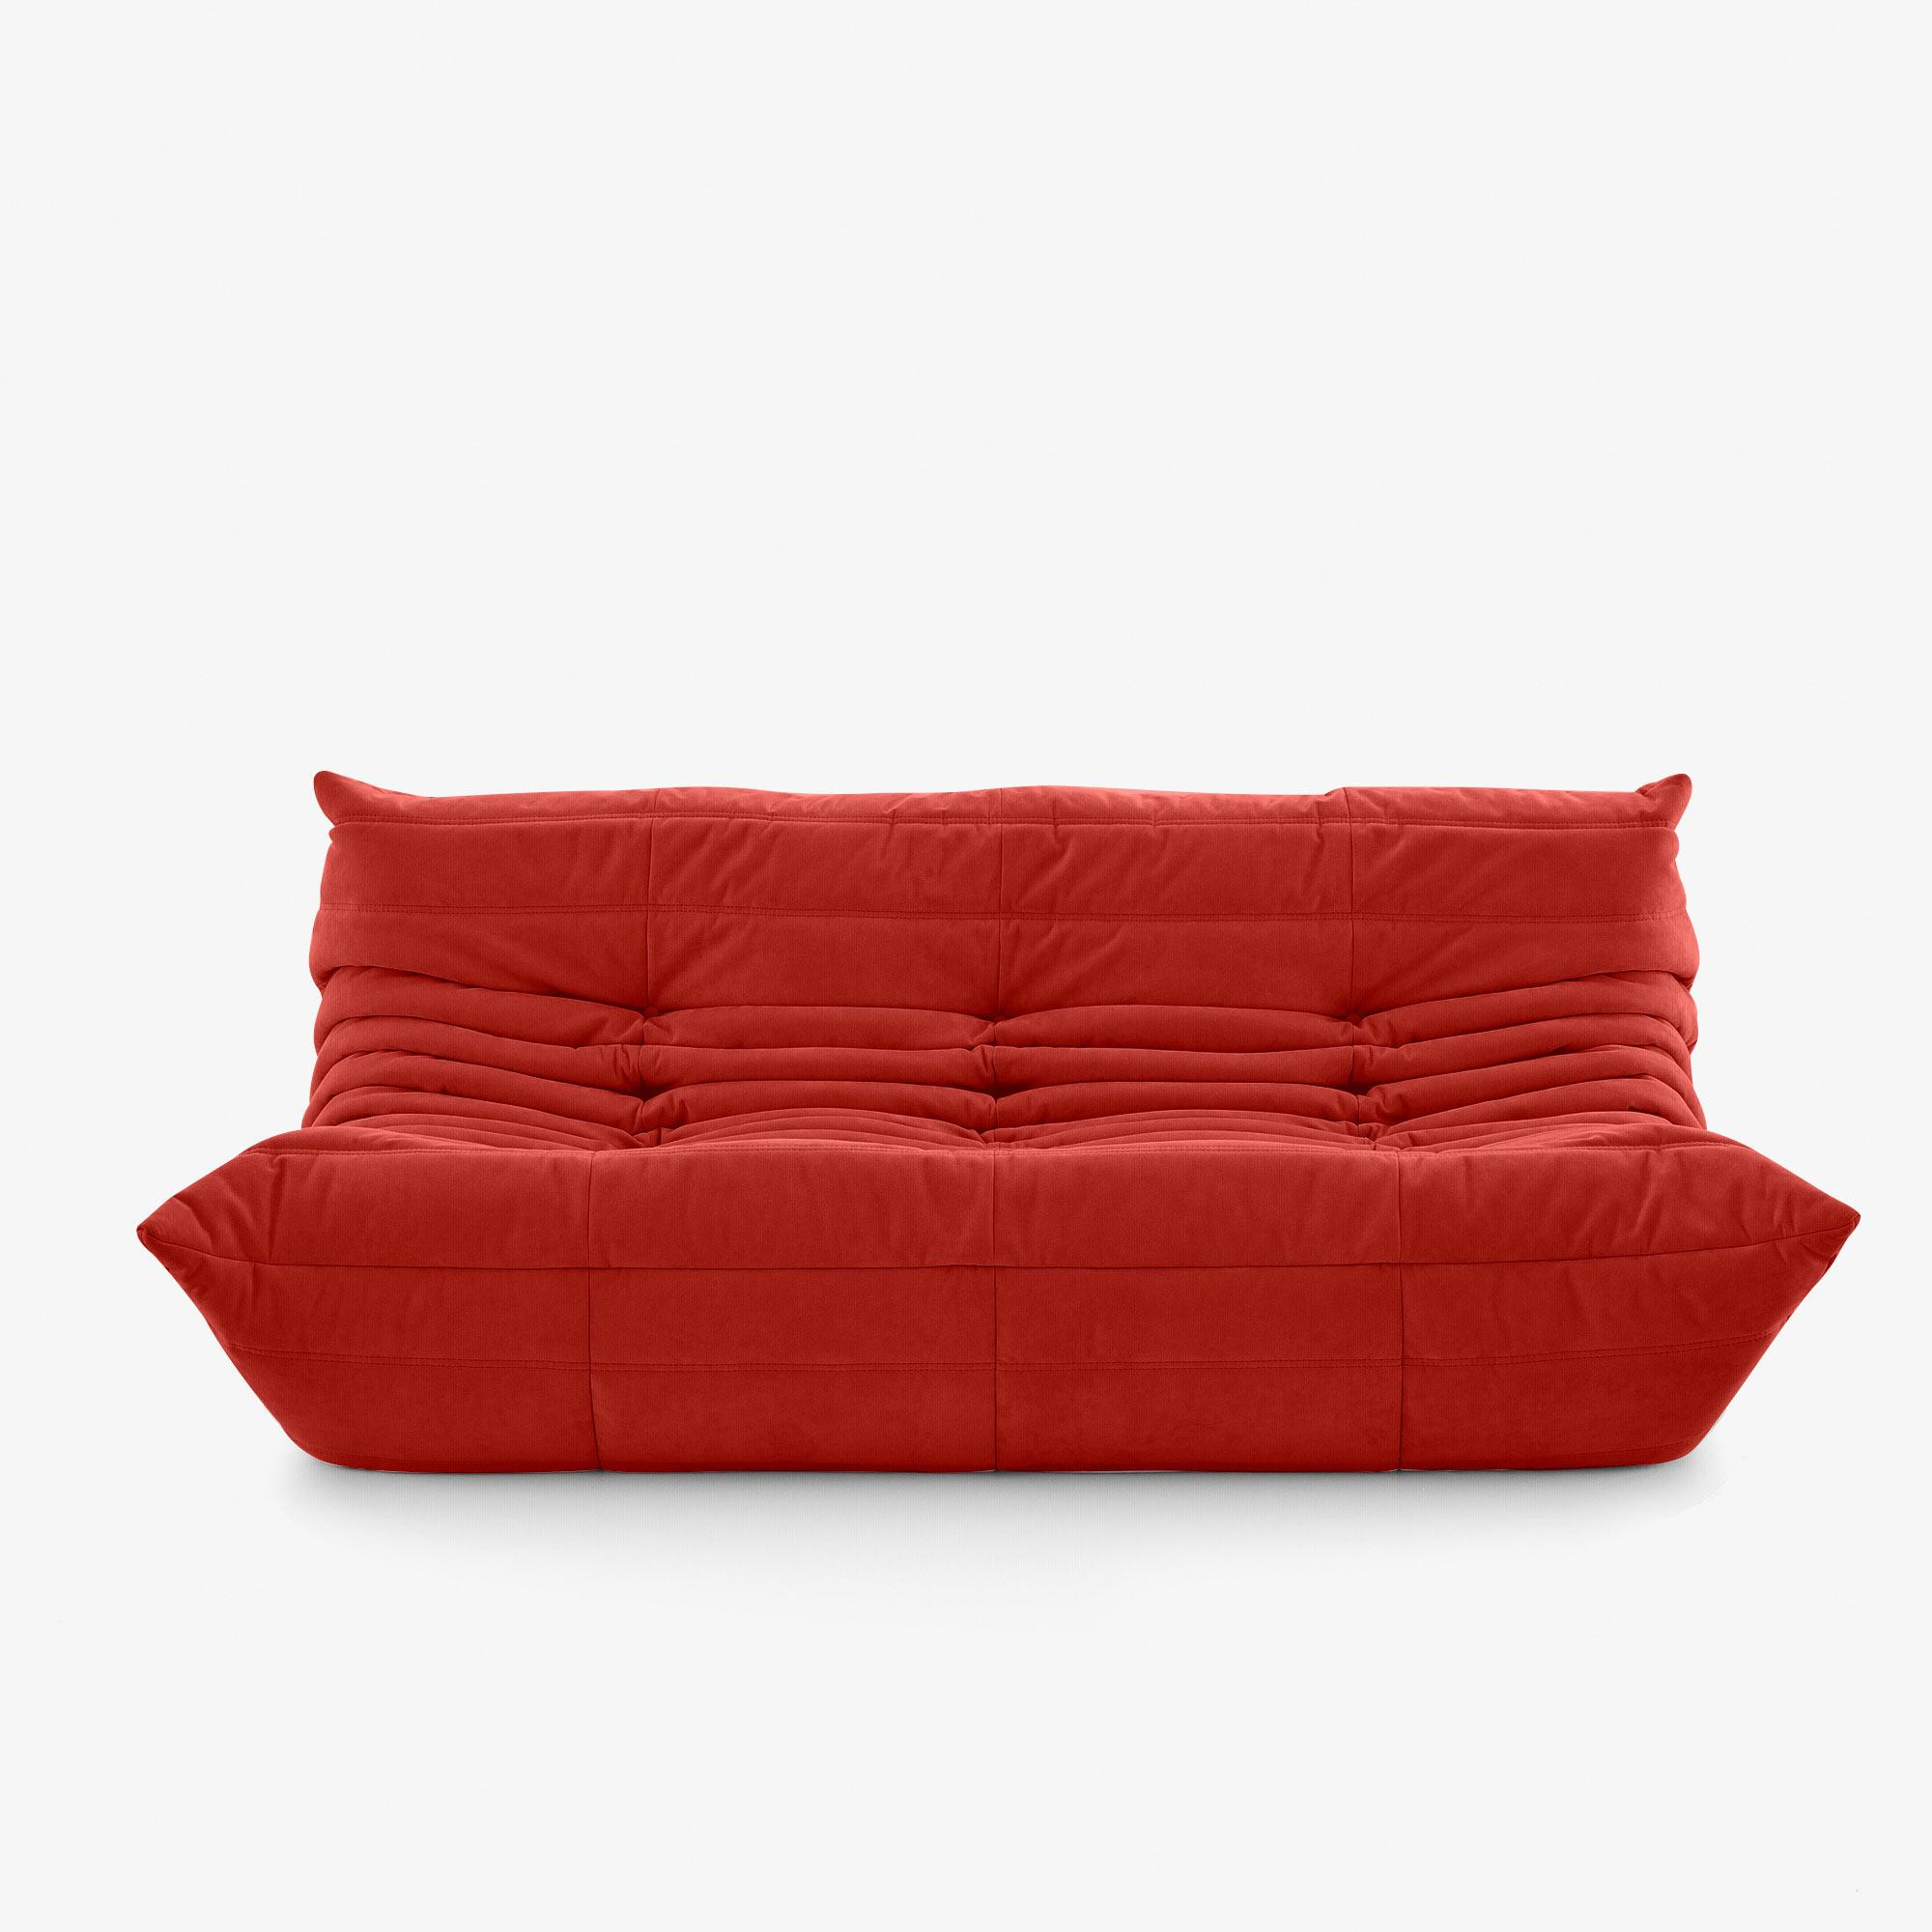 SOFA WITHOUT ARMS Ligne Roset